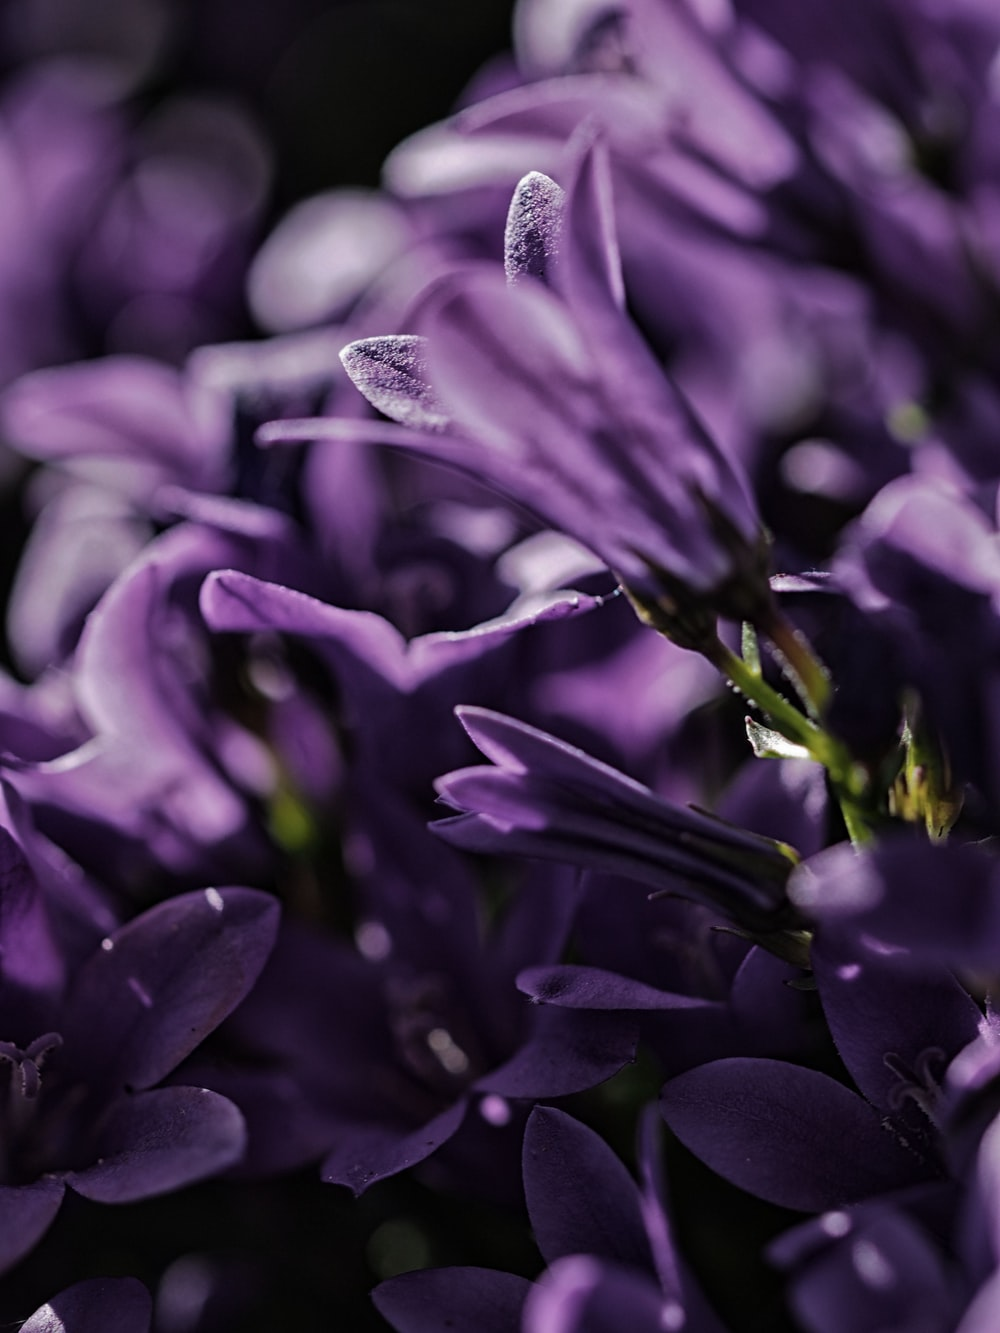 focus photo of purple petaled flower